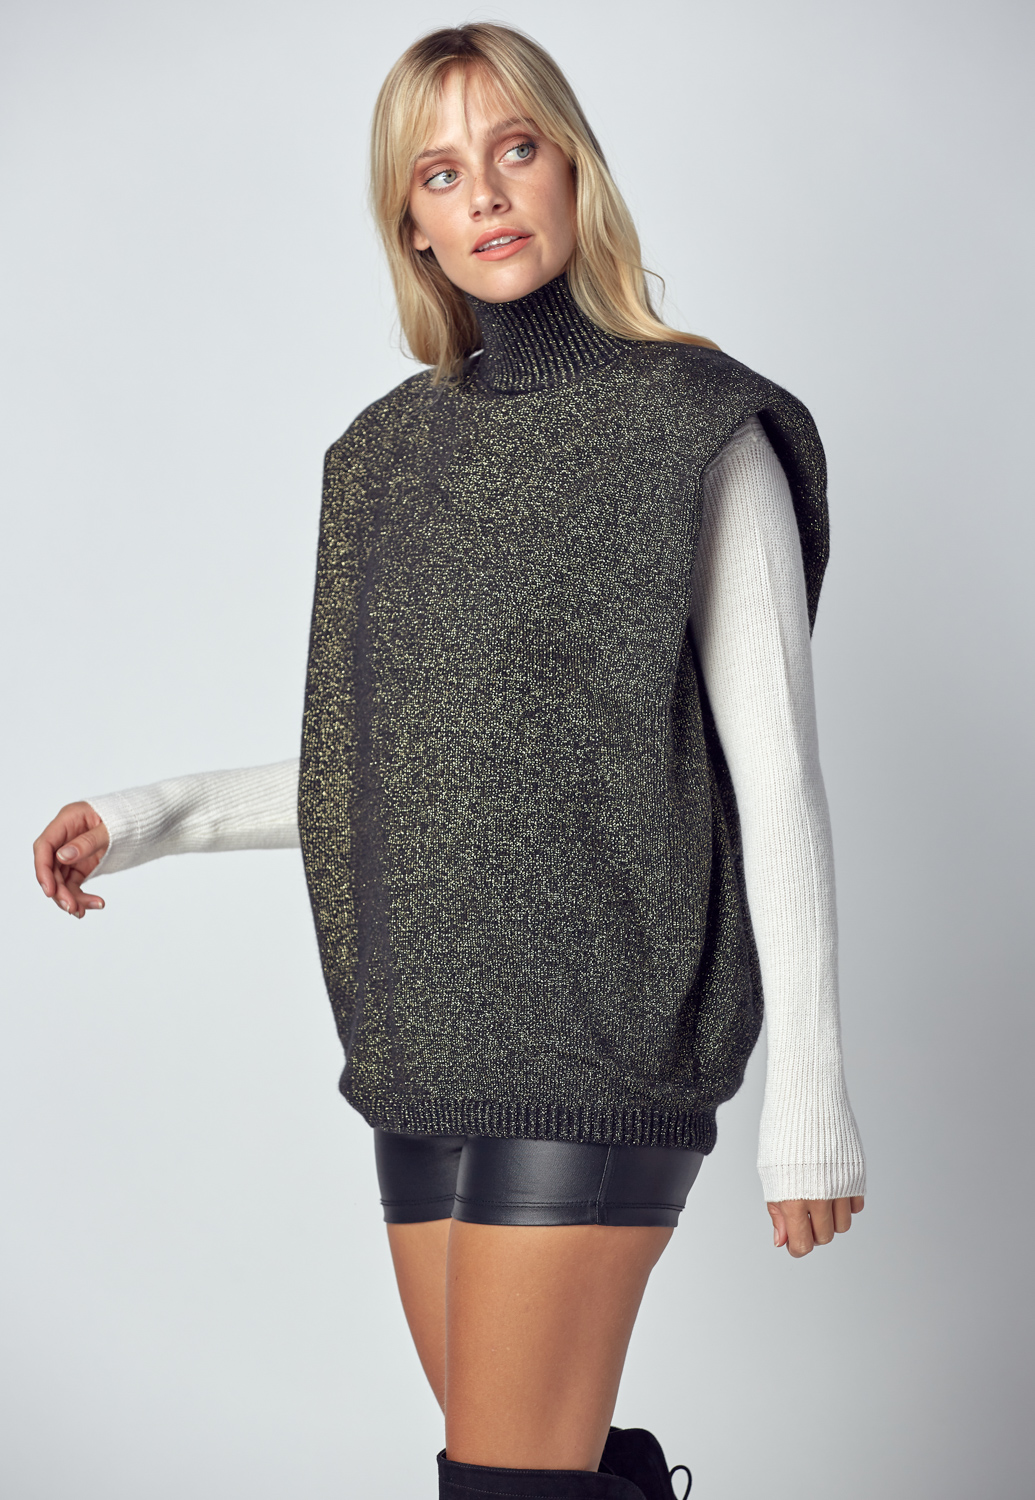 Shoulder Pad Knit Vest